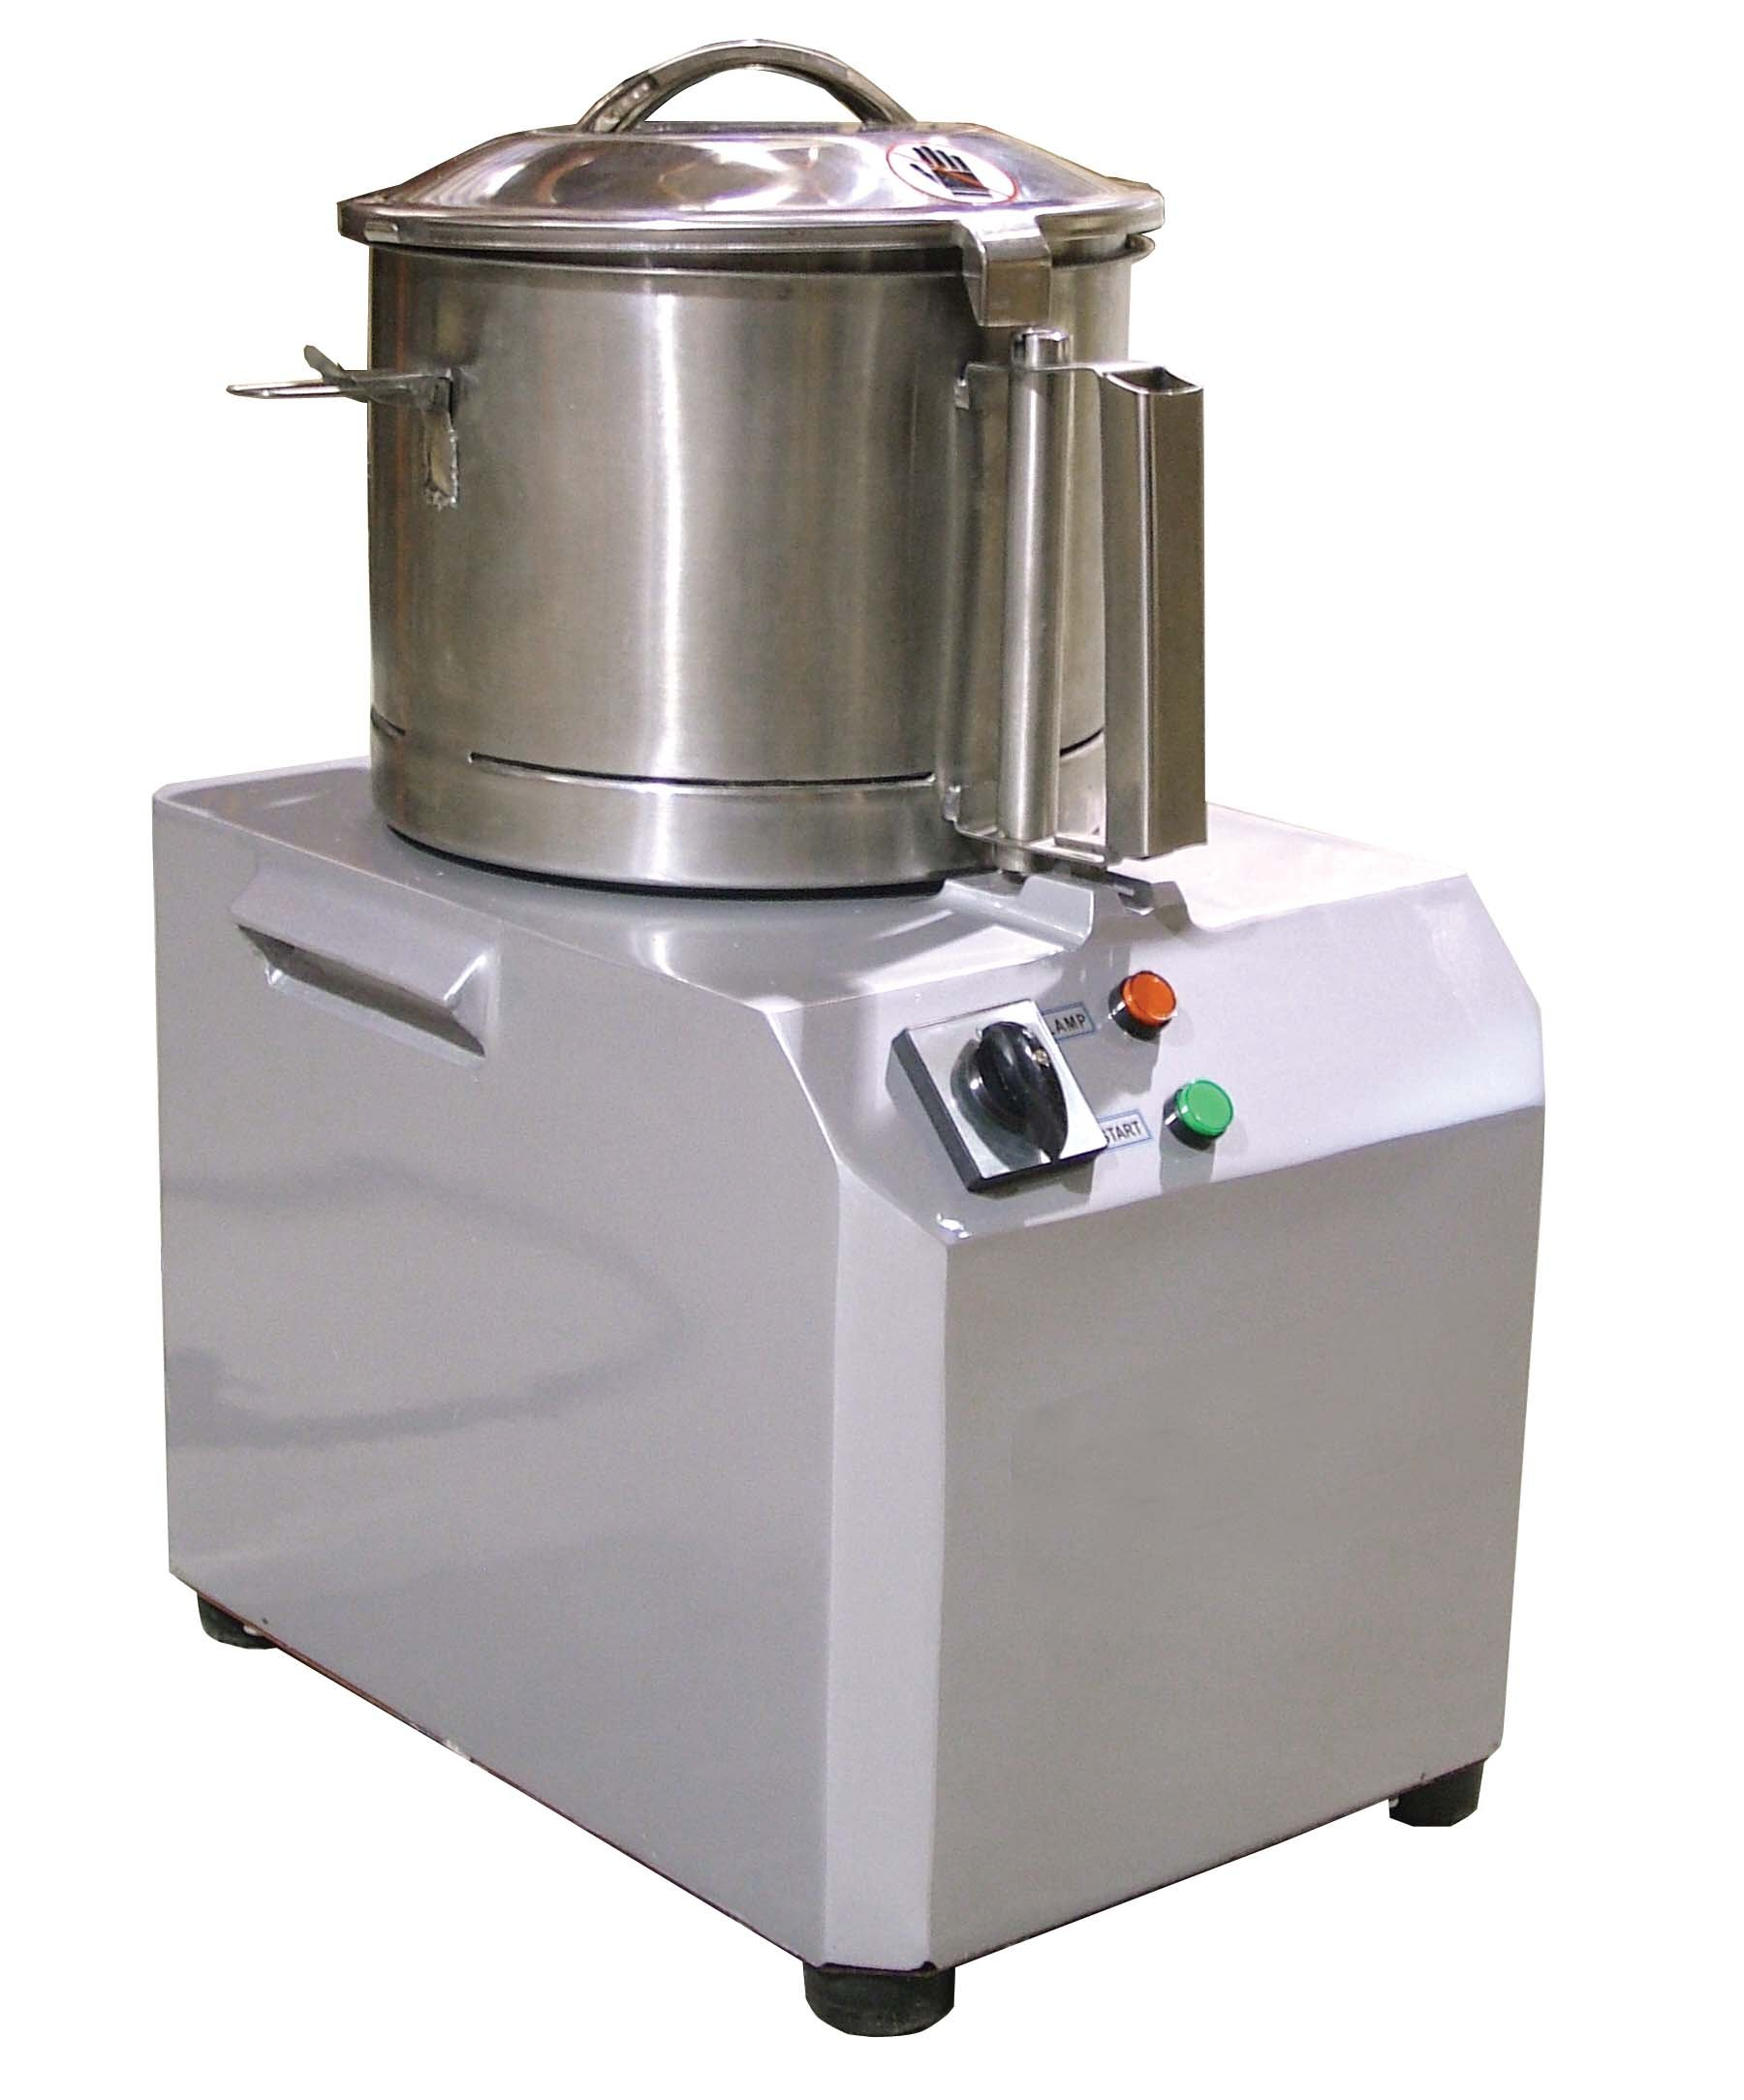 Omcan 10917 Commercial Restaurant 5L Electric 2.5 HP Universal Food Bowl Cutter